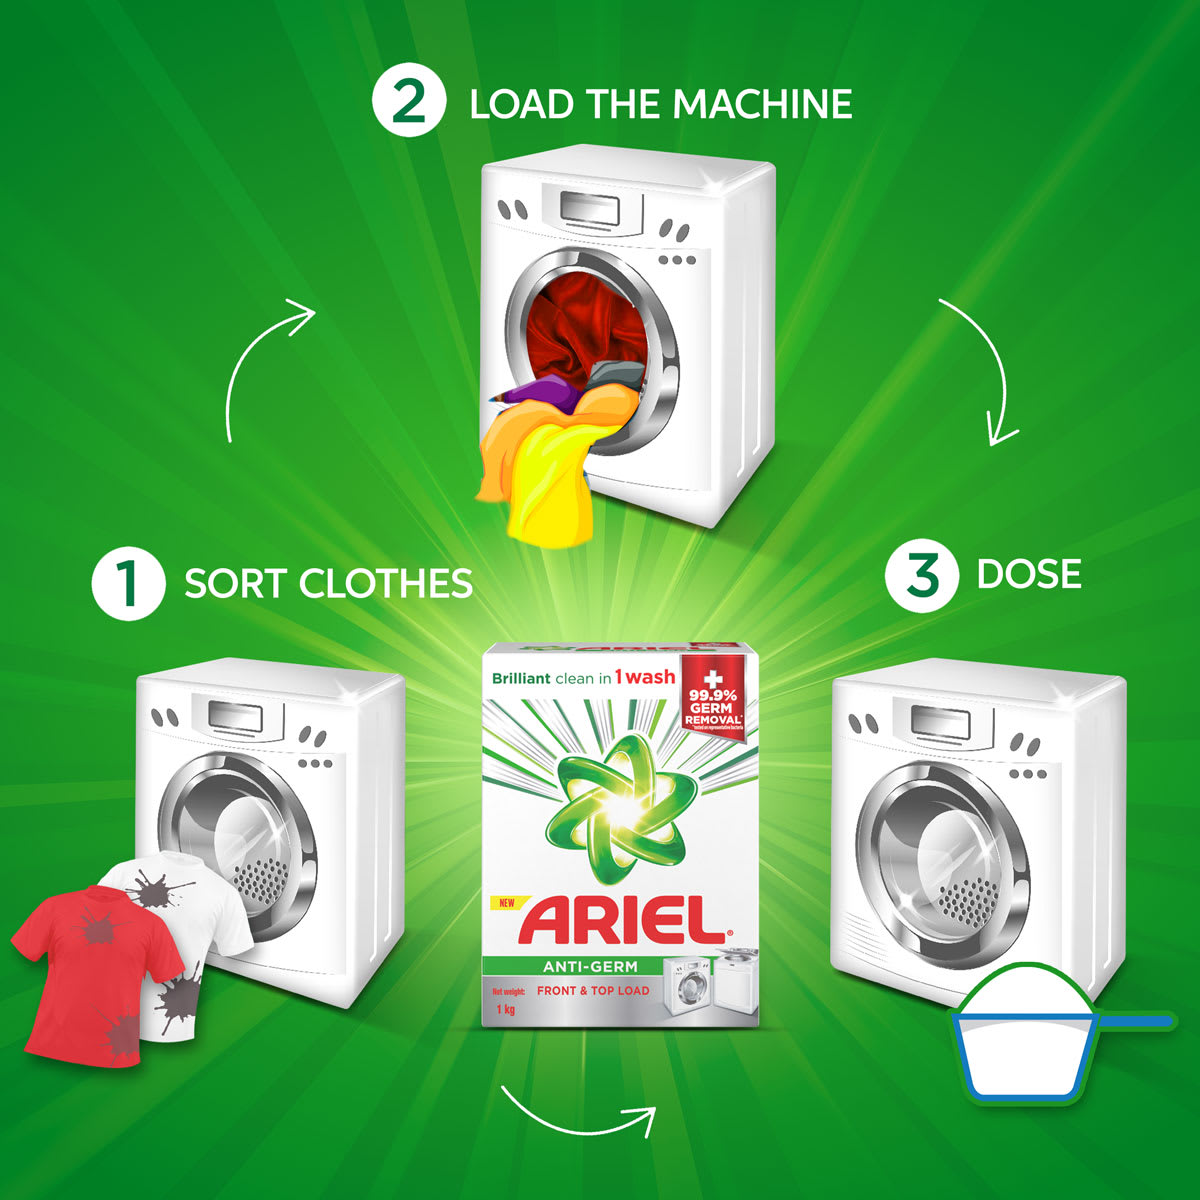 How to use it in 3 easy steps: 1) Sort clothes 2) Load the machine 3) Dose correctly